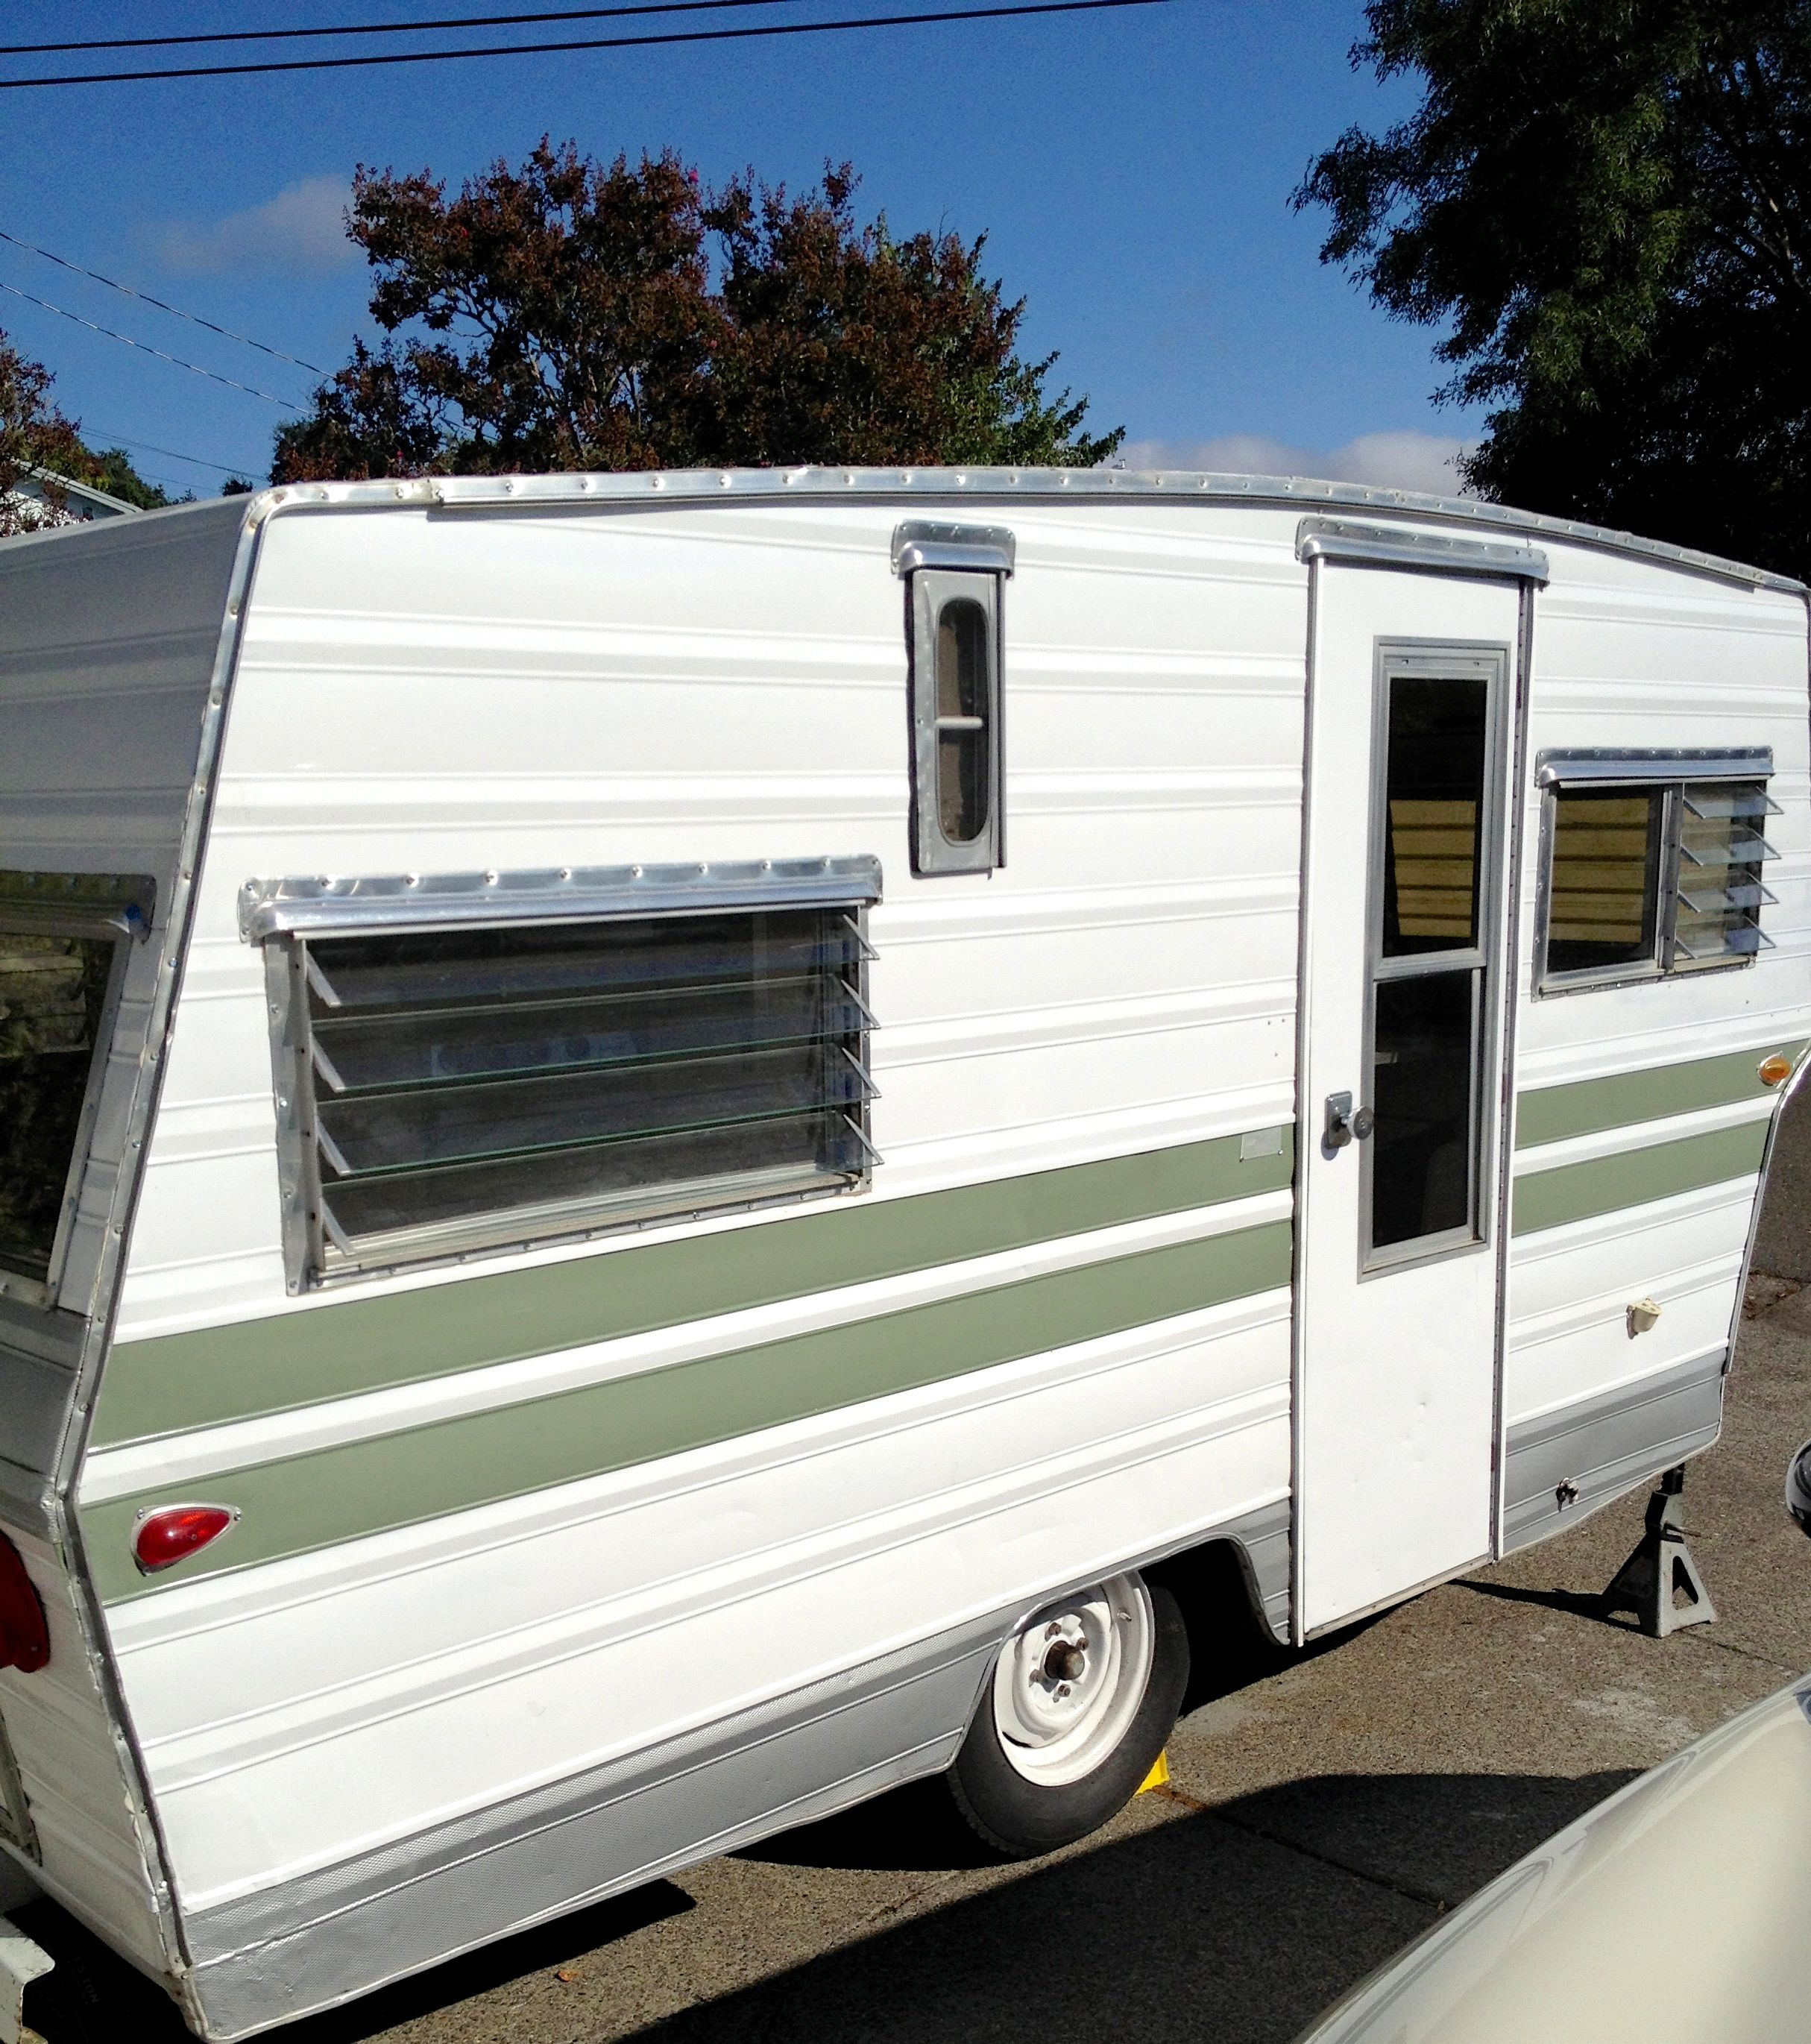 Travel Trailers With Outdoor Kitchens: Vintage 1967 Aristocrat Trailer. Mine! :)